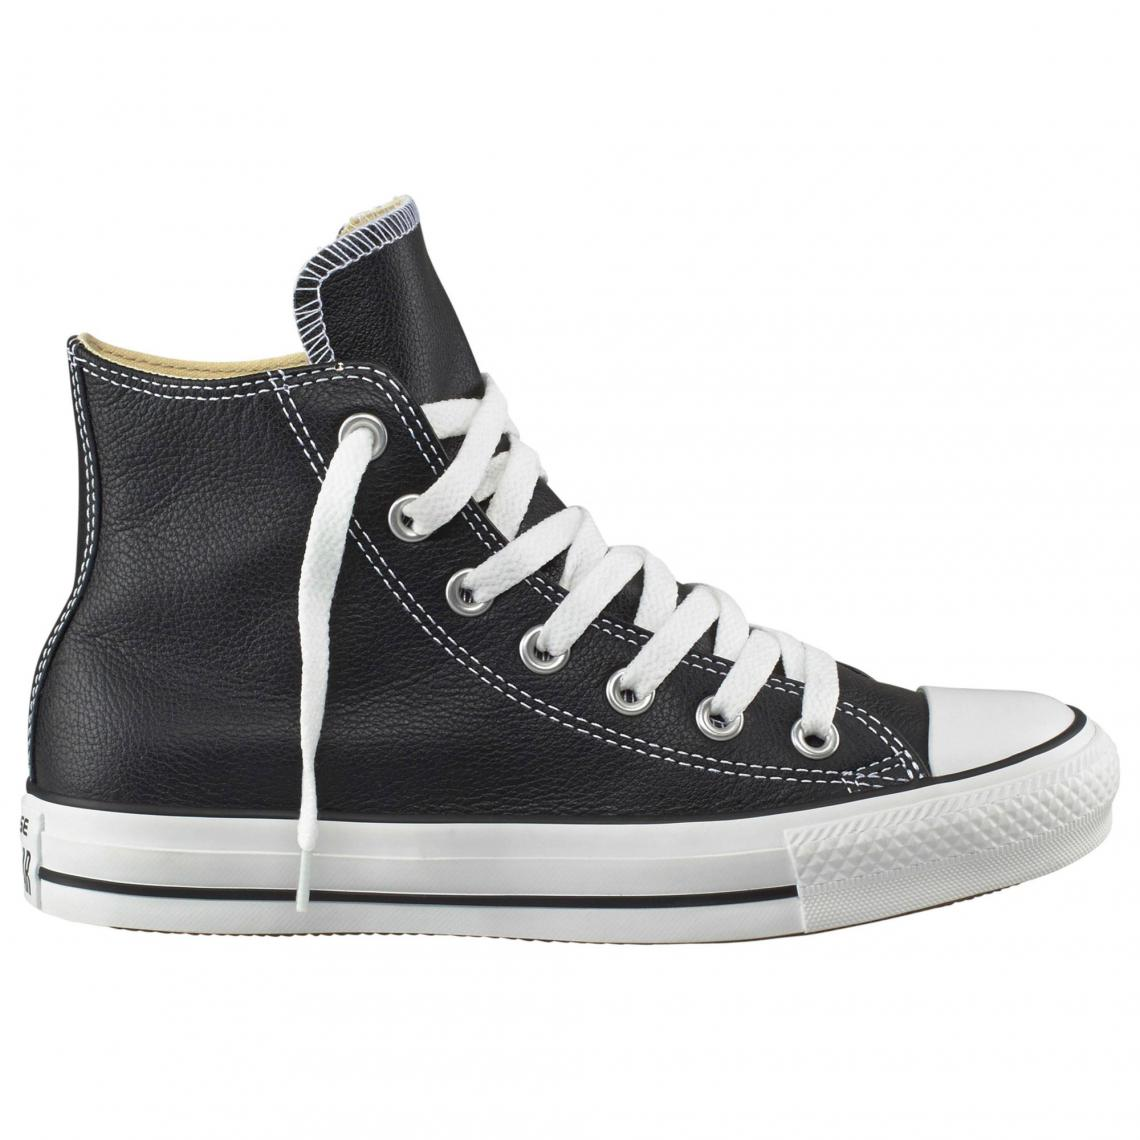 c799ce6ec10d Baskets montantes Converse All Star Basic Leather cuir homme - Noir ...